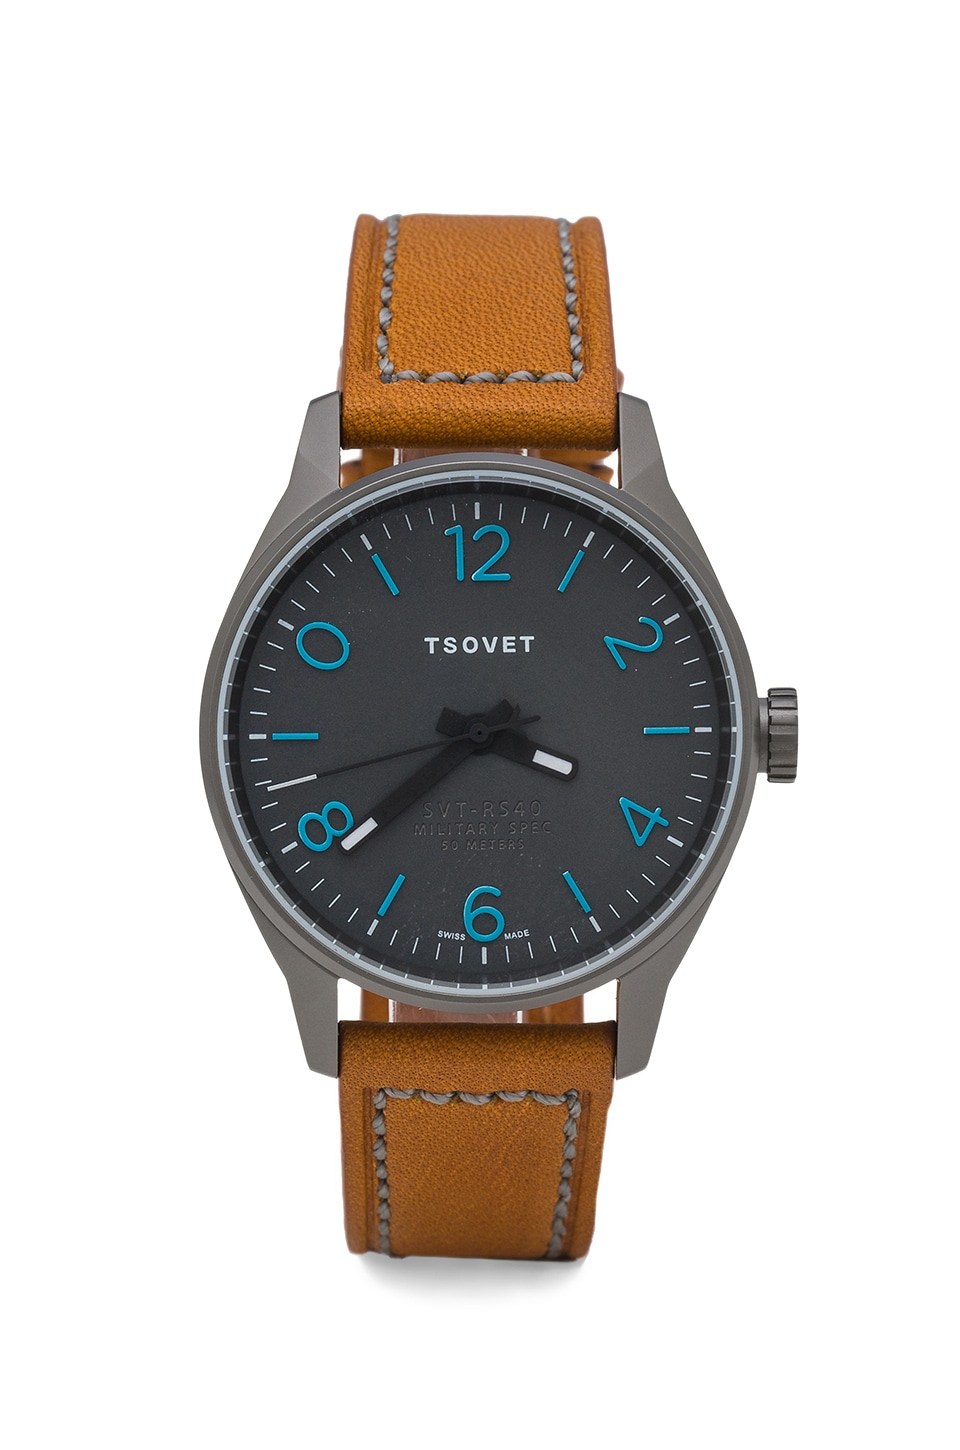 Tsovet SVT-RS40 in Gunmetal/Grey/Camel